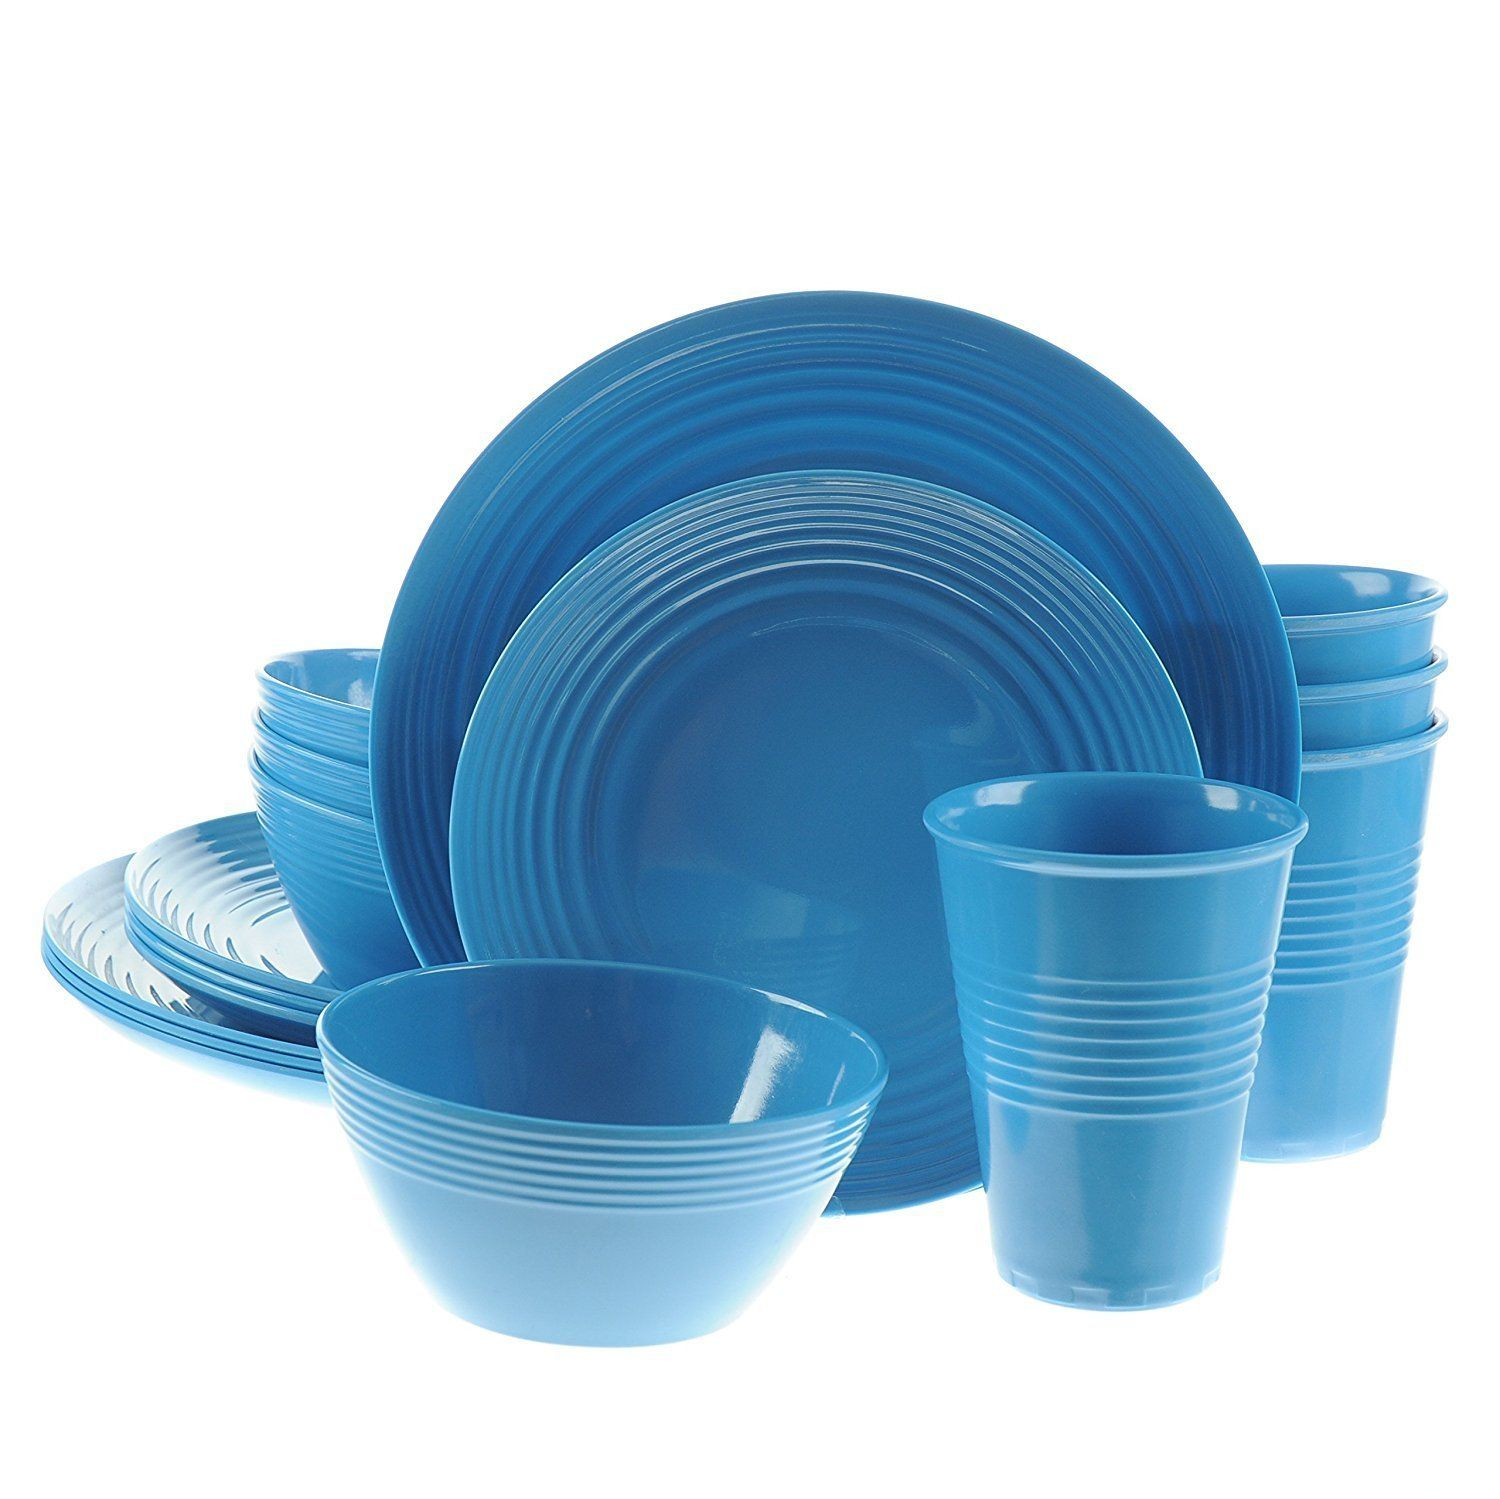 Made of a durable break-resistant material this dinnerware set is a colorful alternative  sc 1 st  HuffPost & 8 Durable Dinnerware Sets That Wonu0027t Break | HuffPost